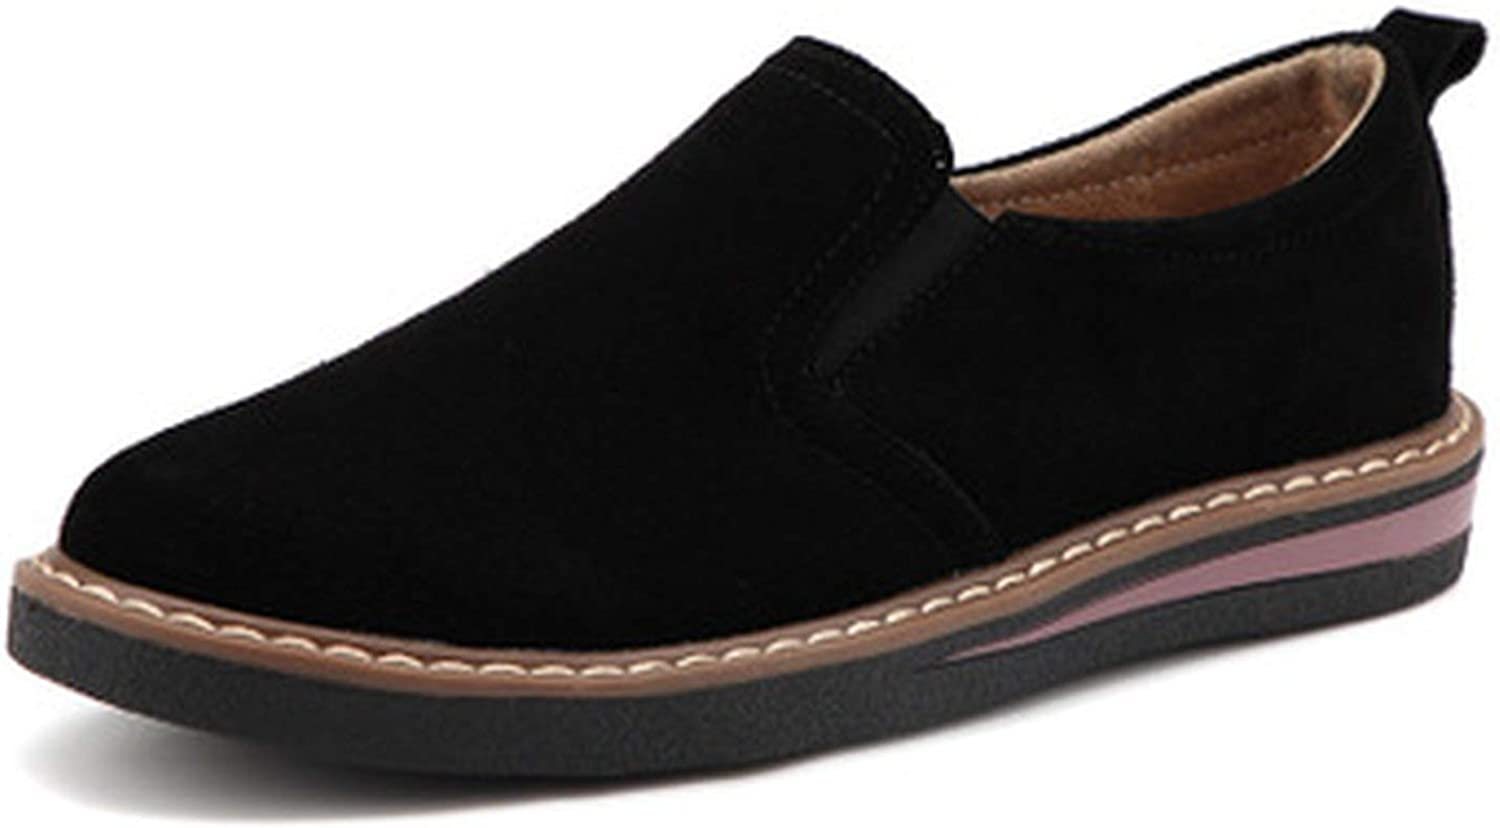 HANBINGPO 2019 Spring Women Flats Sneakers shoes Women Slip on Flat Loafers Suede Leather shoes Handmade Boat shoes Black Oxfords